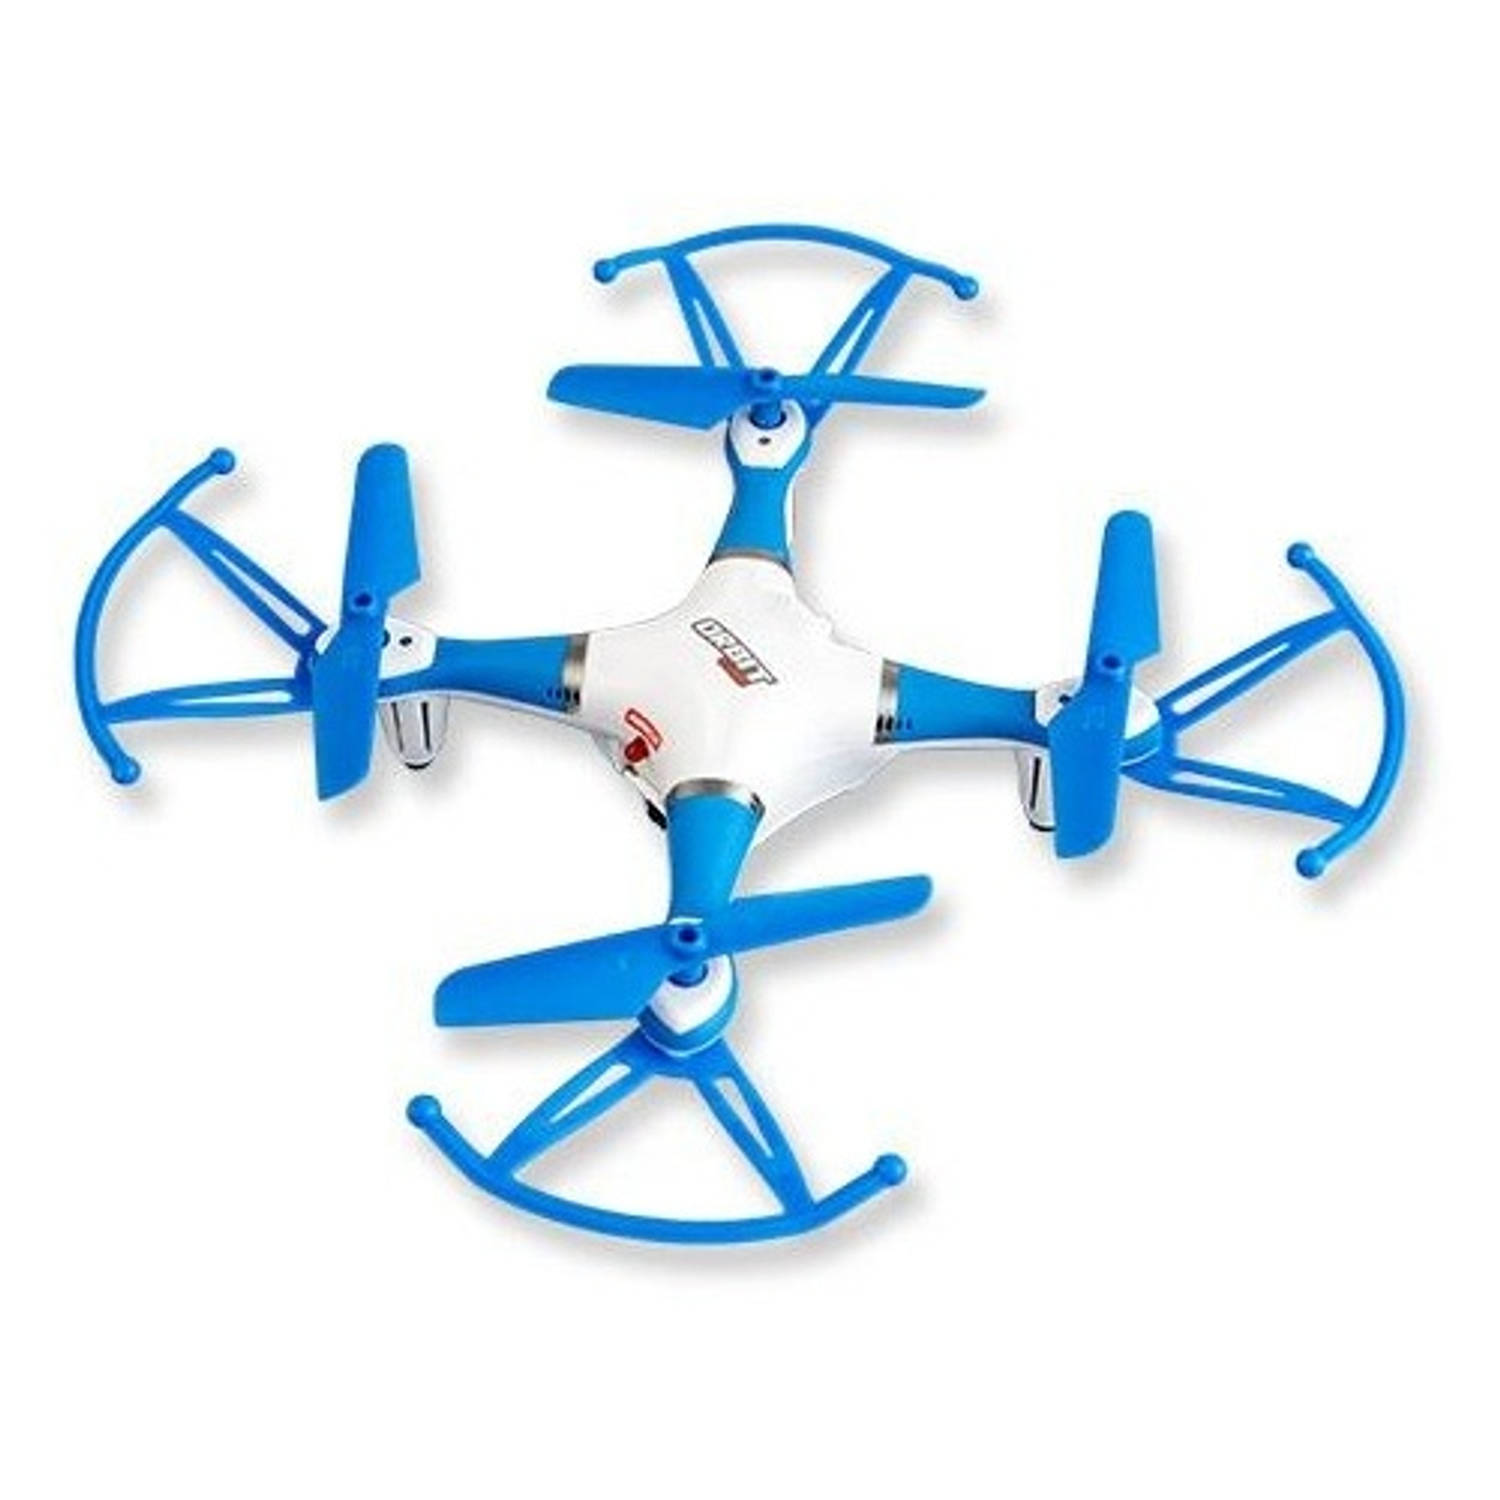 Ninco quadcopter Air Orbit Cam met camera blauw/wit 18 cm